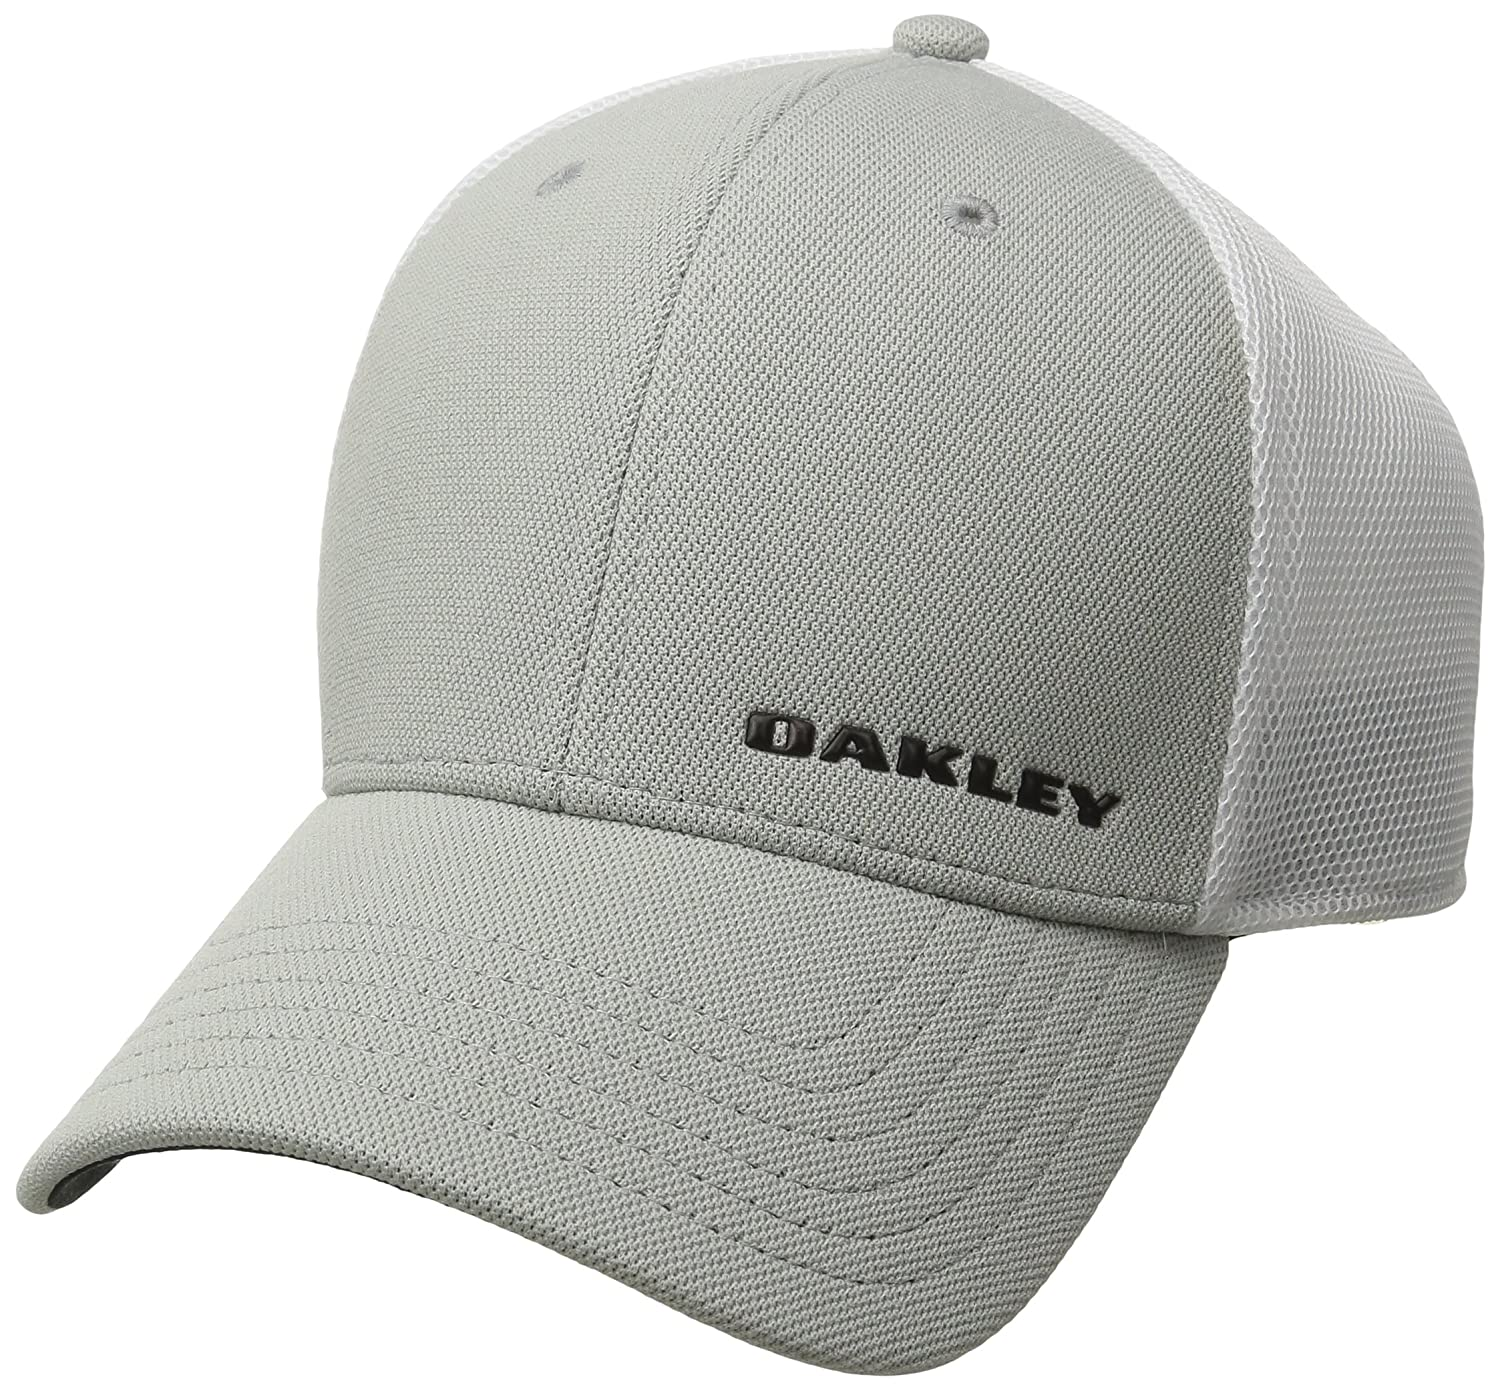 Oakley Silicon Bark Trucker 4.0 – Gorra para Hombre: Amazon.es ...